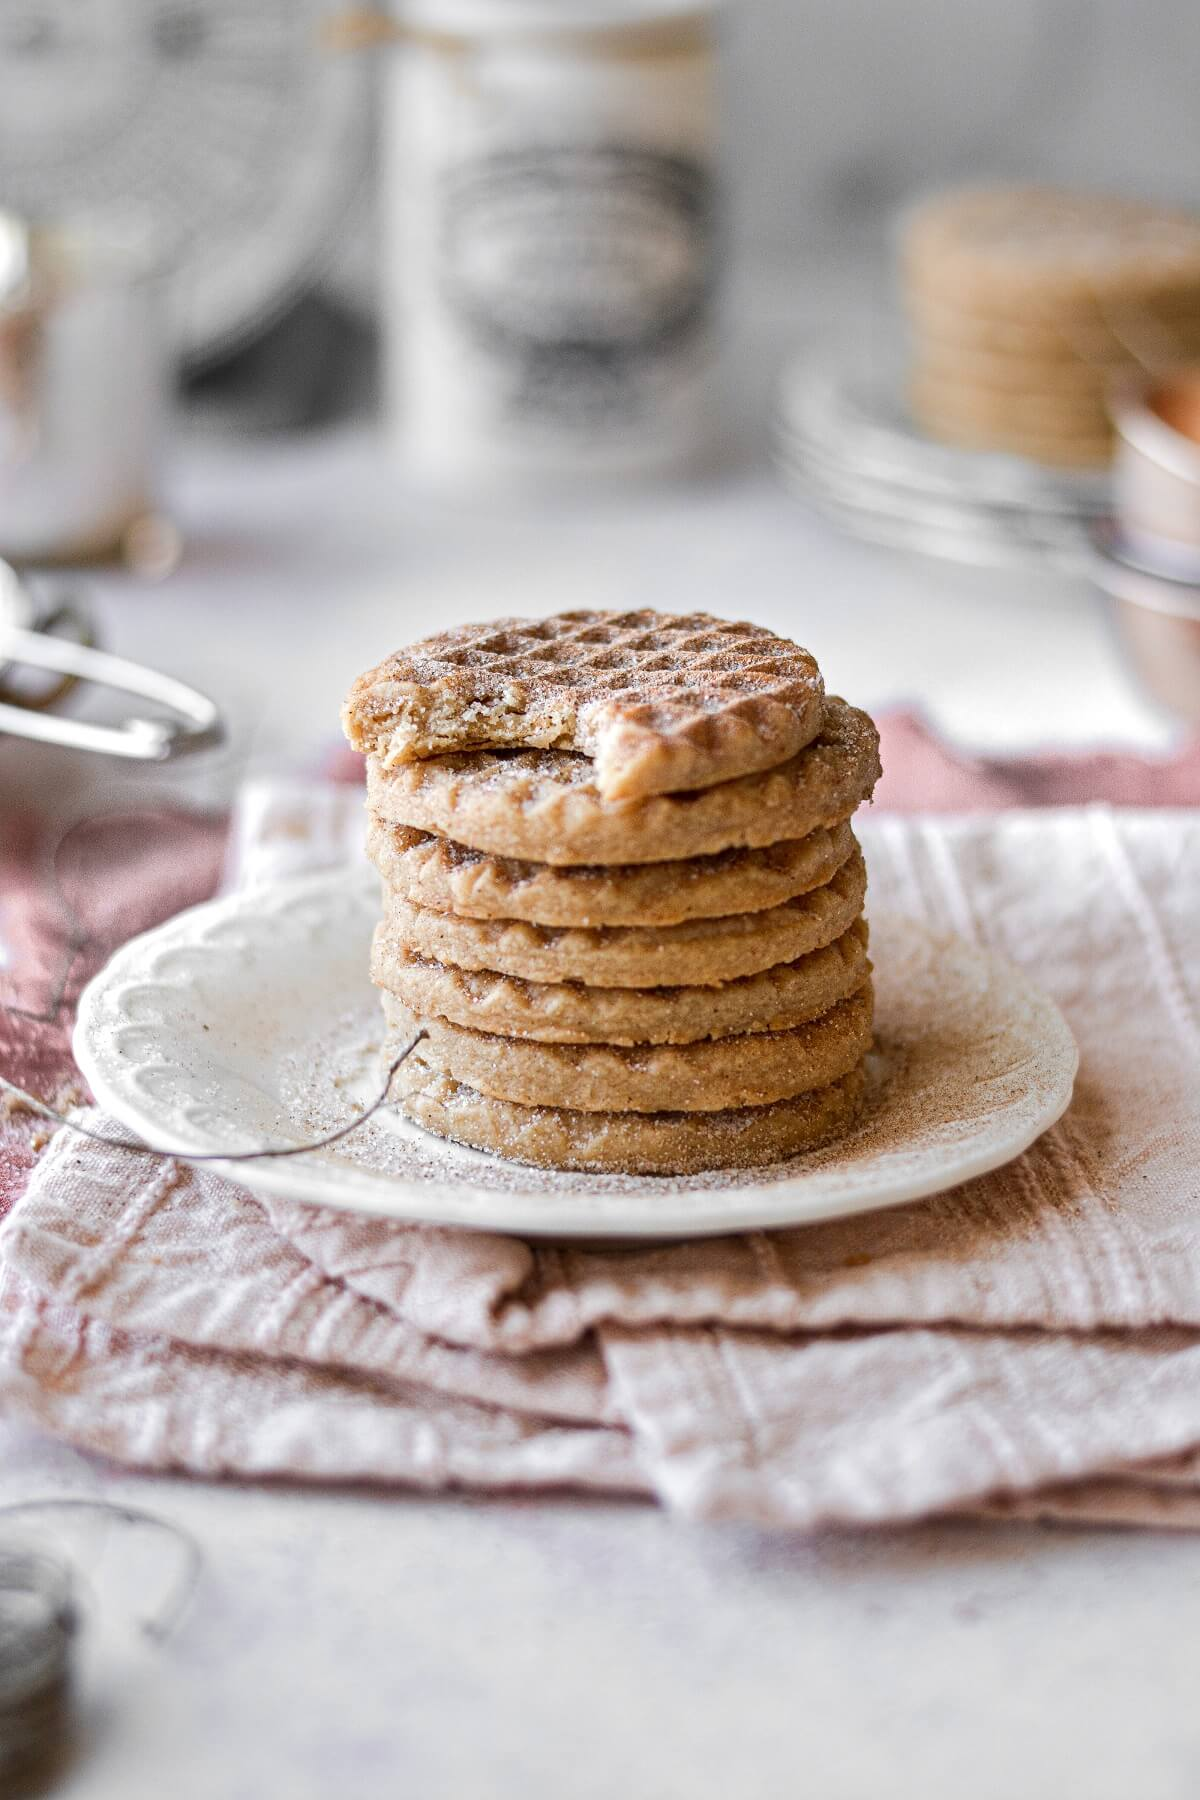 A stack of snickerdoodle shortbread cookies, the top one with a bite taken.